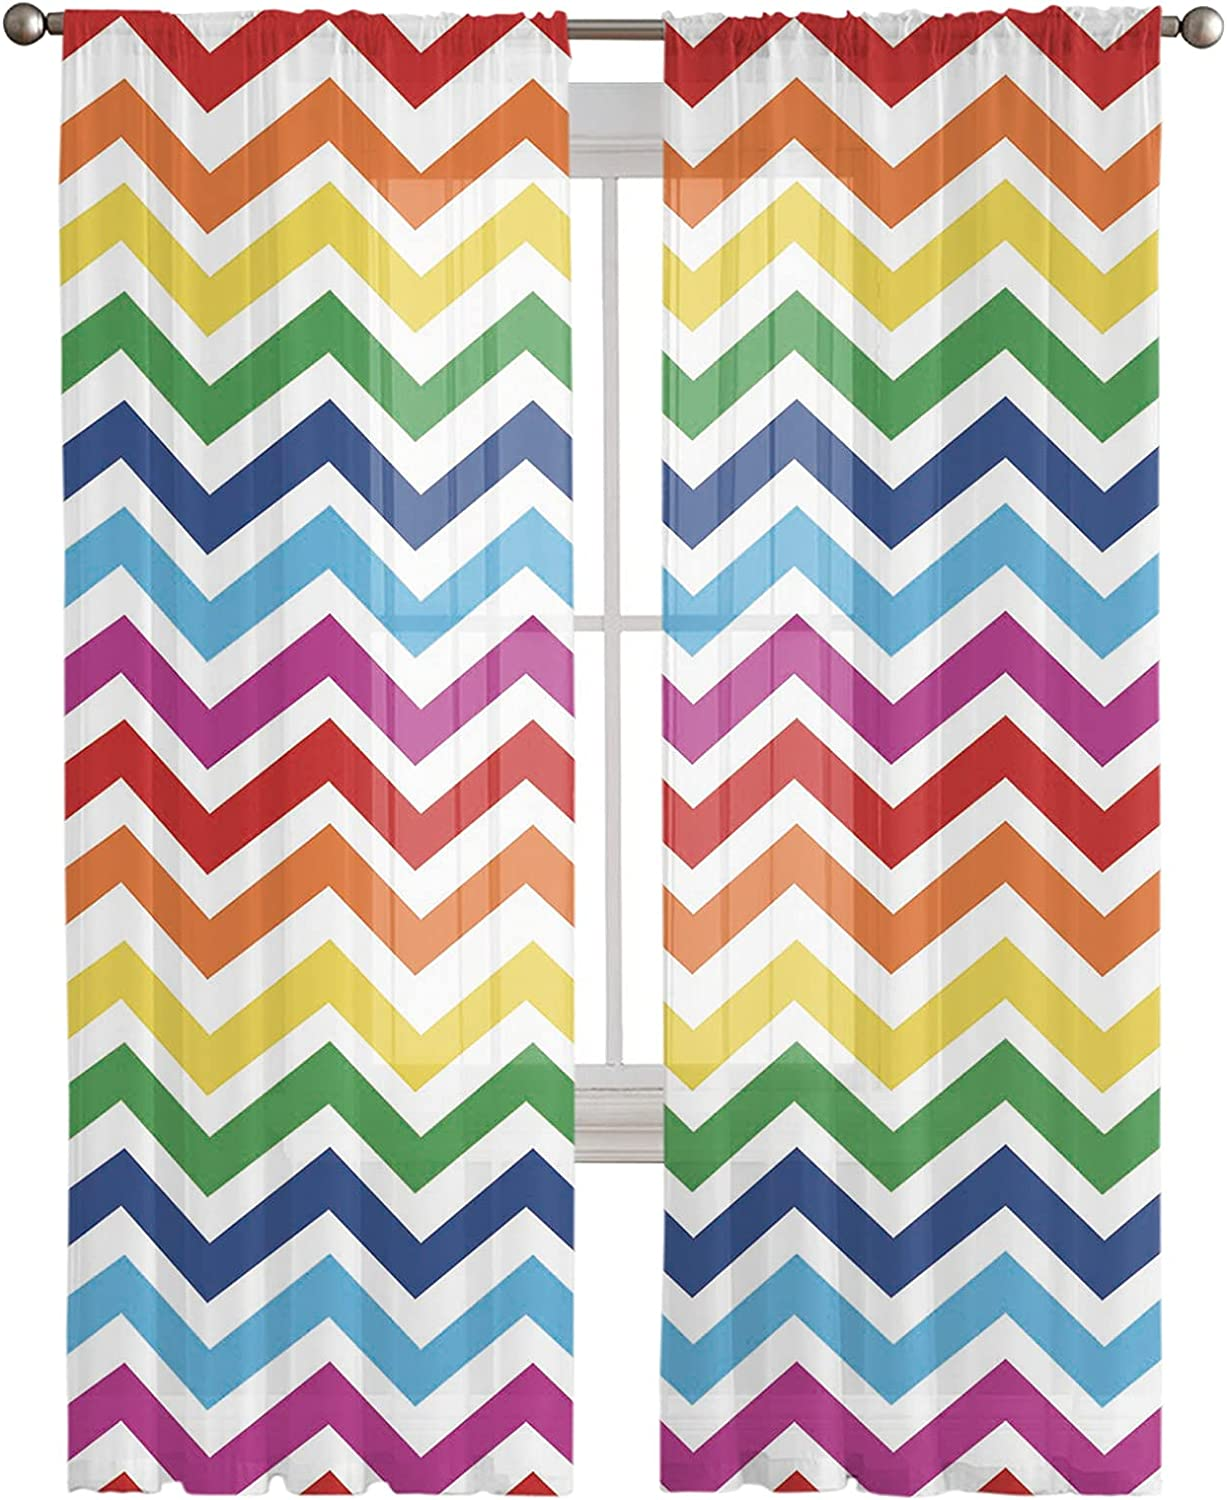 Kitchen Semi Sheer Now free shipping Window Curtain Long Inches Panels Rainbow 108 Max 65% OFF